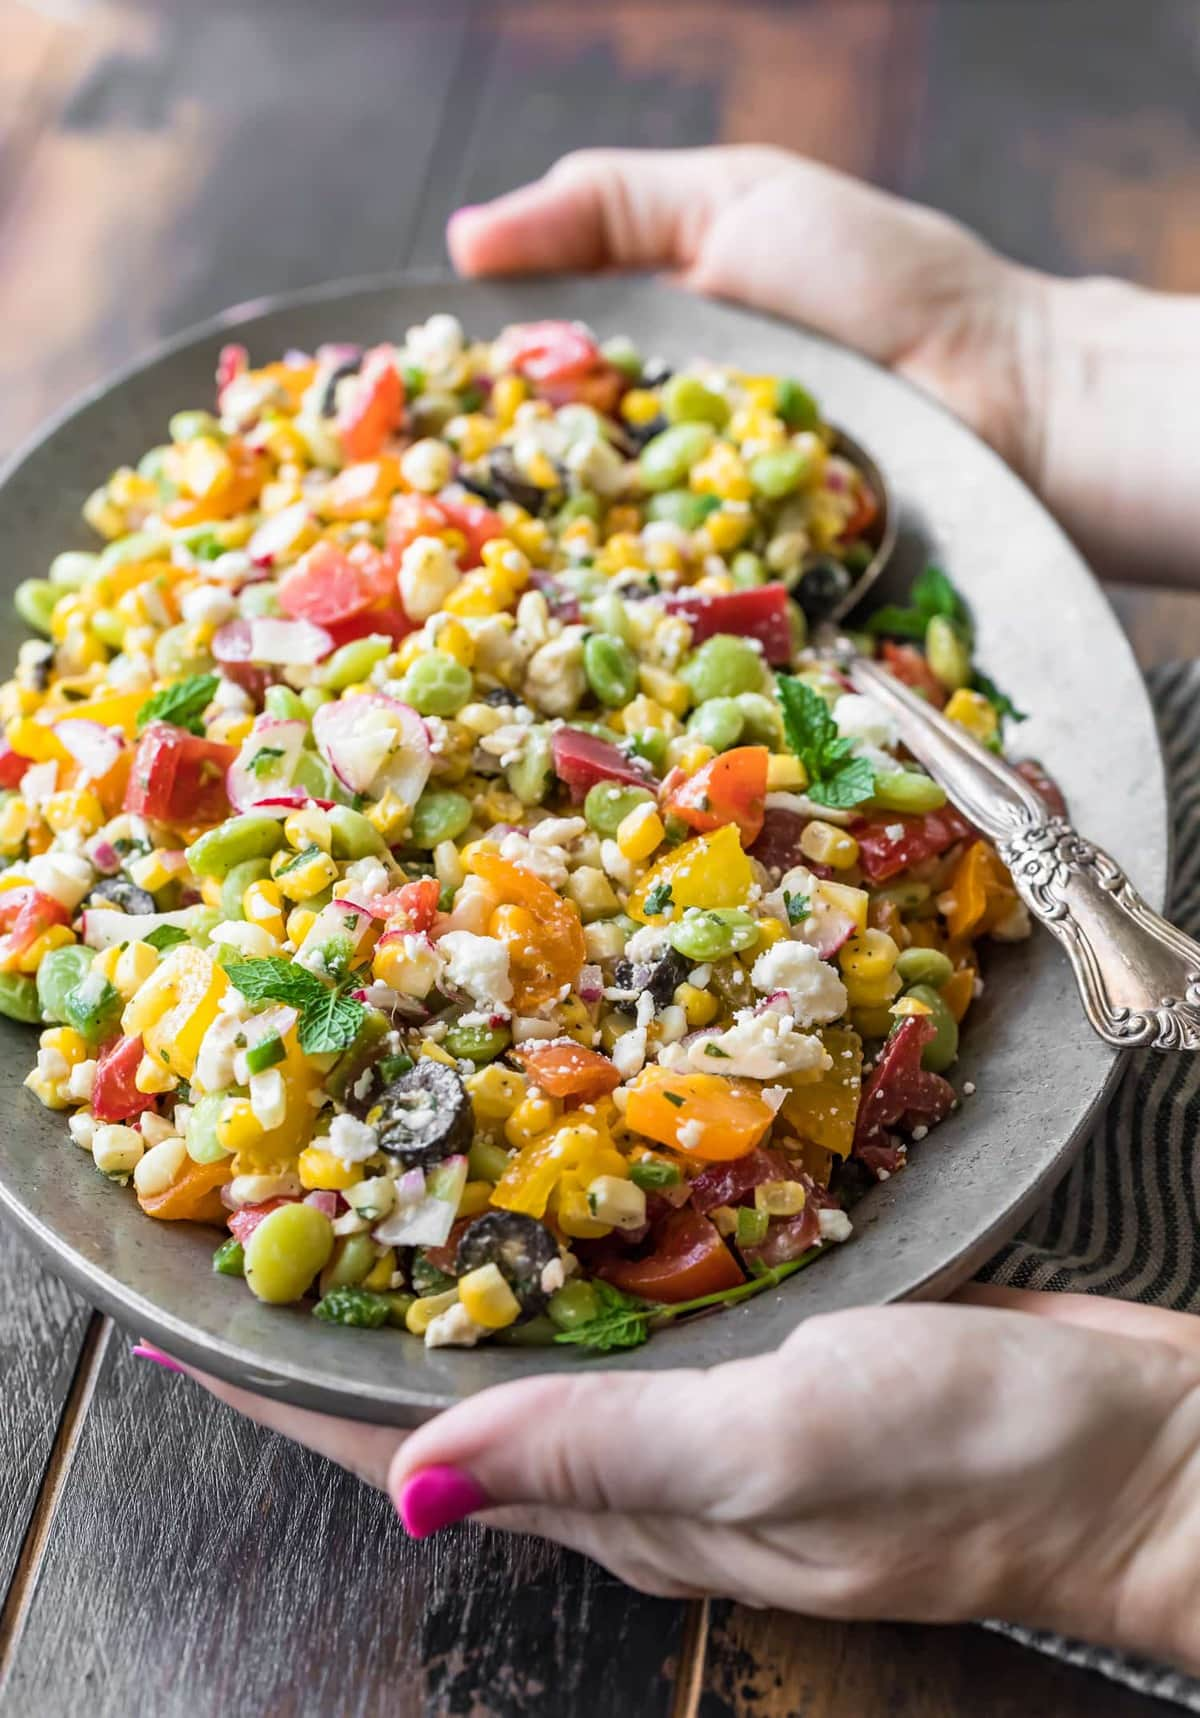 Hands holding a plate of Peruvian Chopped Salad